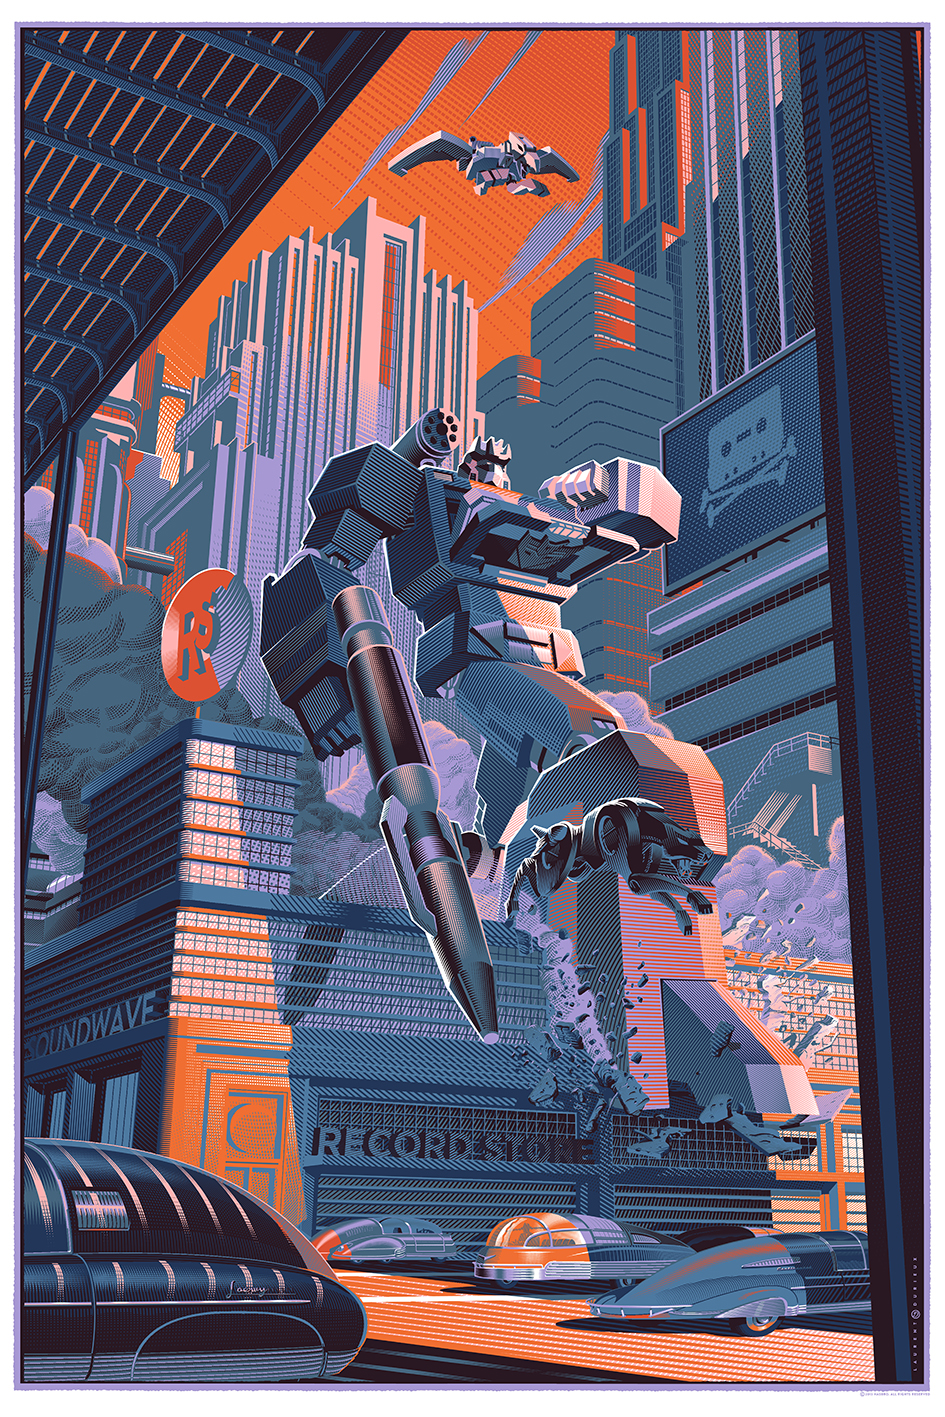 soundwave-reg.jpg